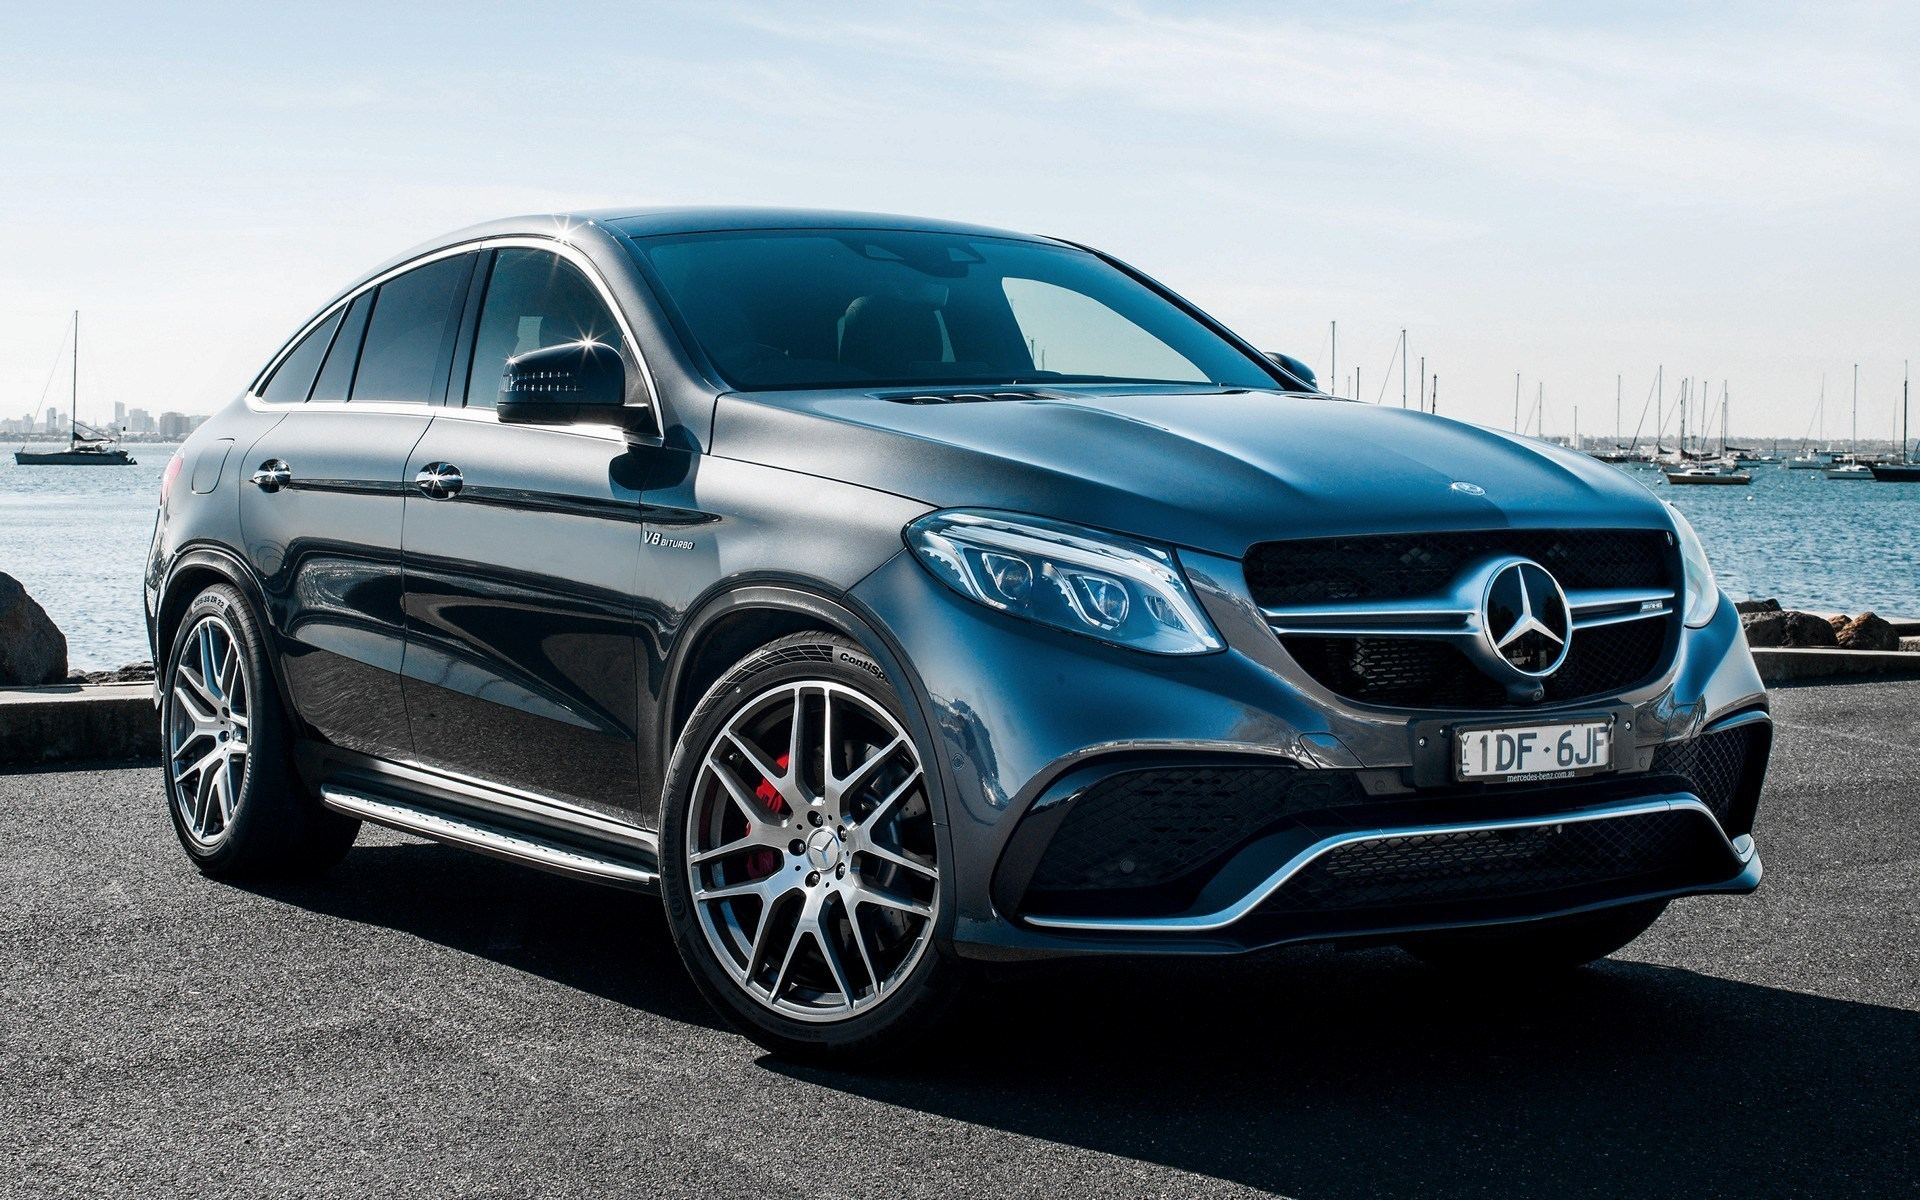 Tag For Mercedes Benz Gle 63 Amg Wallpapers 2017 Mercedes Mercedes Gle Coupe 63 Amg S 1703222 Hd Wallpaper Backgrounds Download